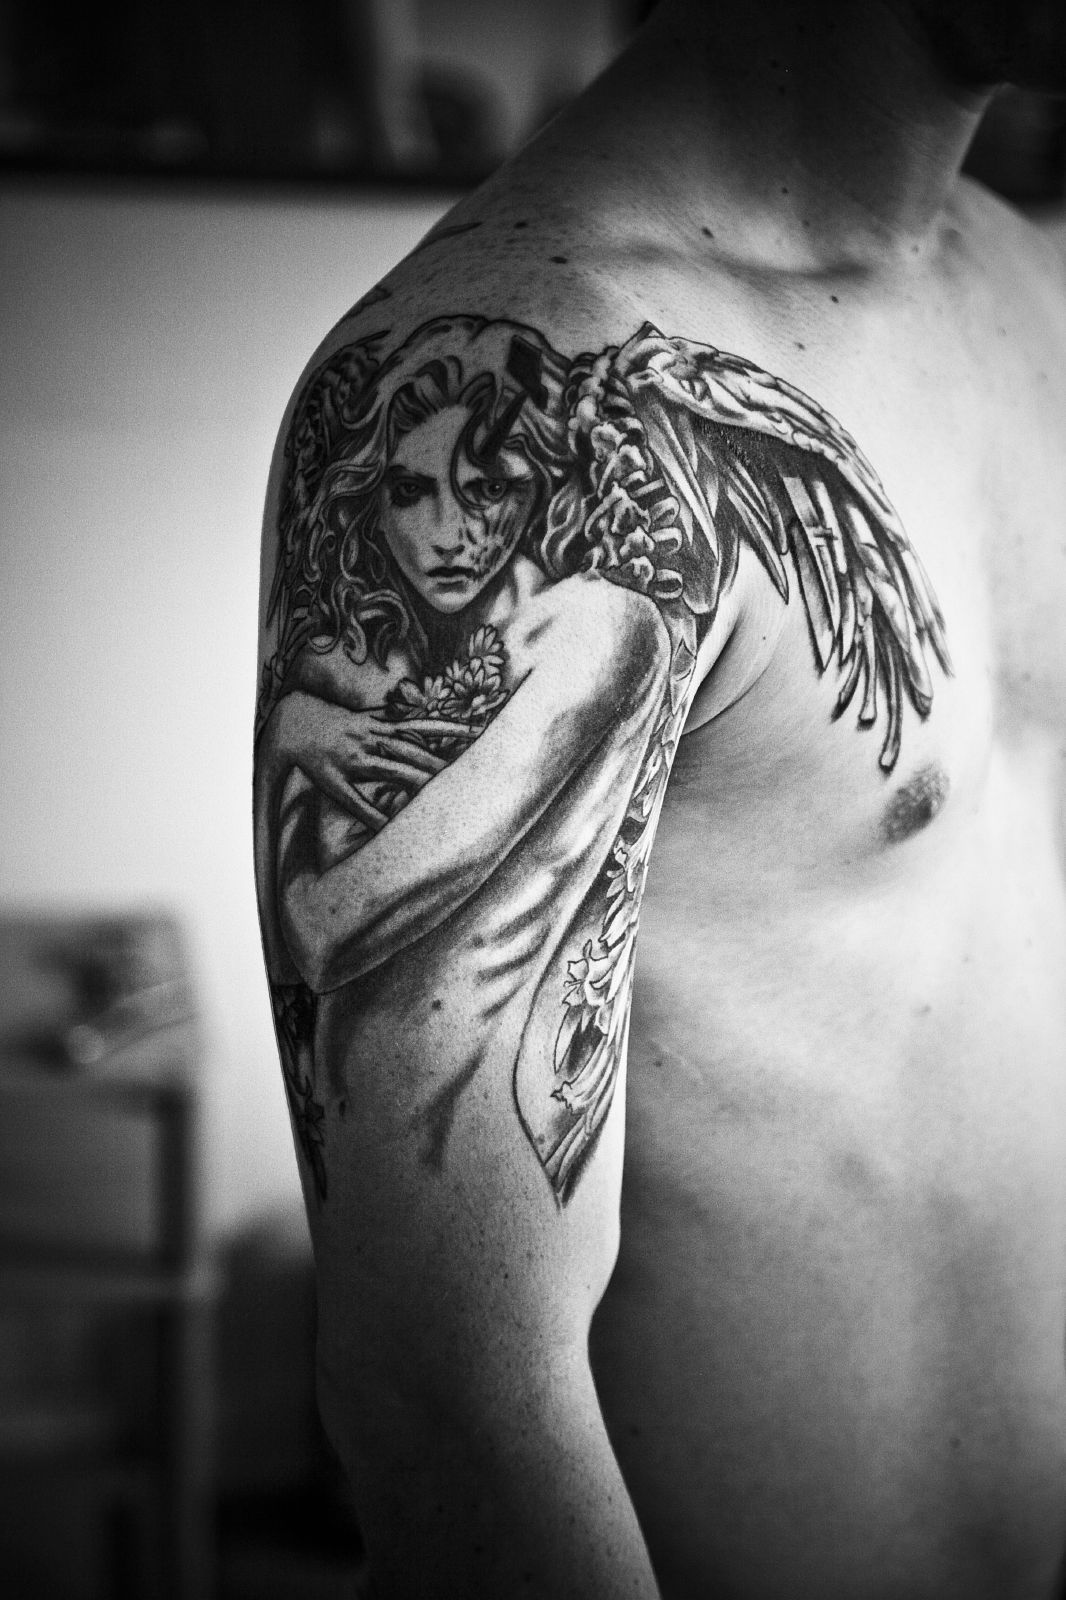 35 amazing tattoos for women with meaning - 35 Amazingly Elegant Guardian Angel Tattoos Different Types